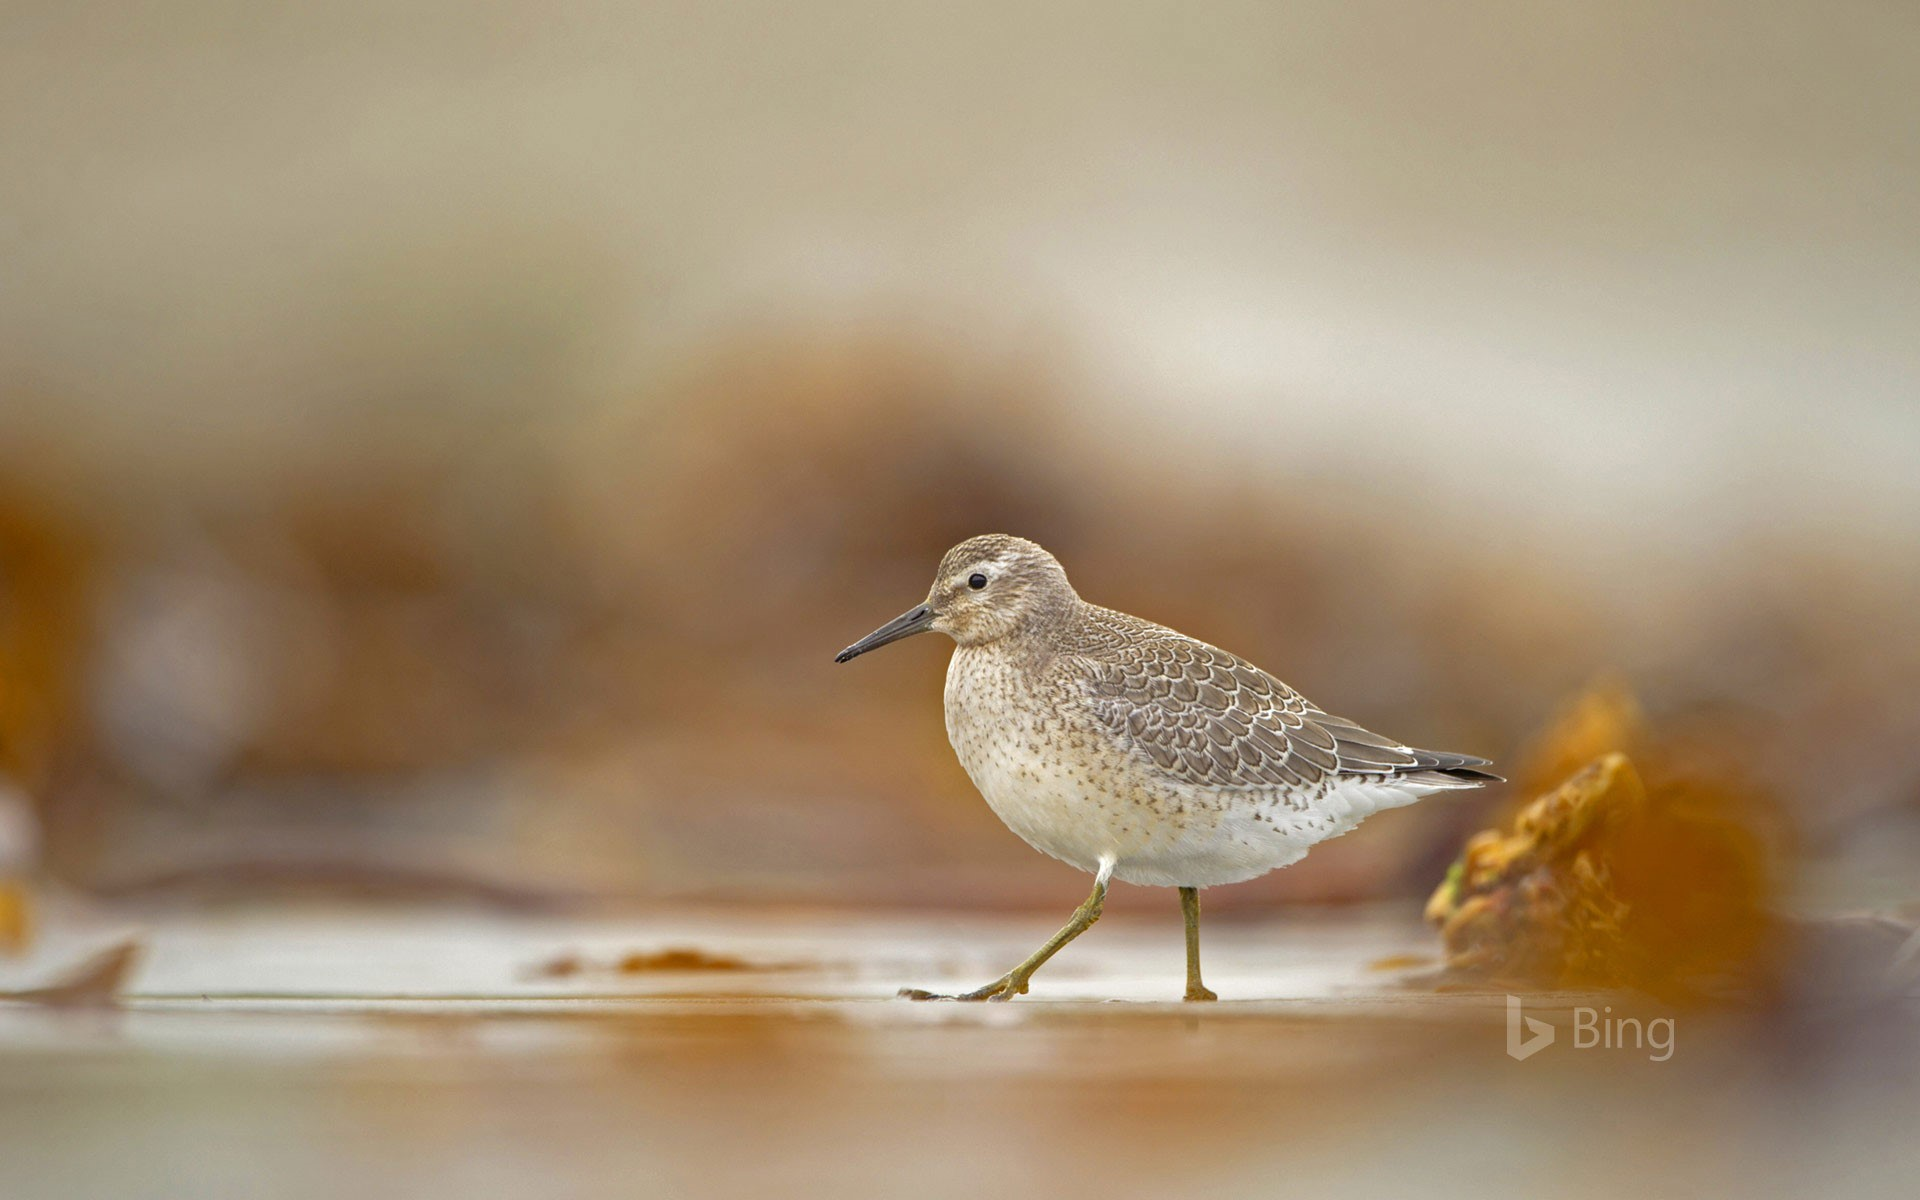 A red knot foraging on the Shetland Islands, Scotland